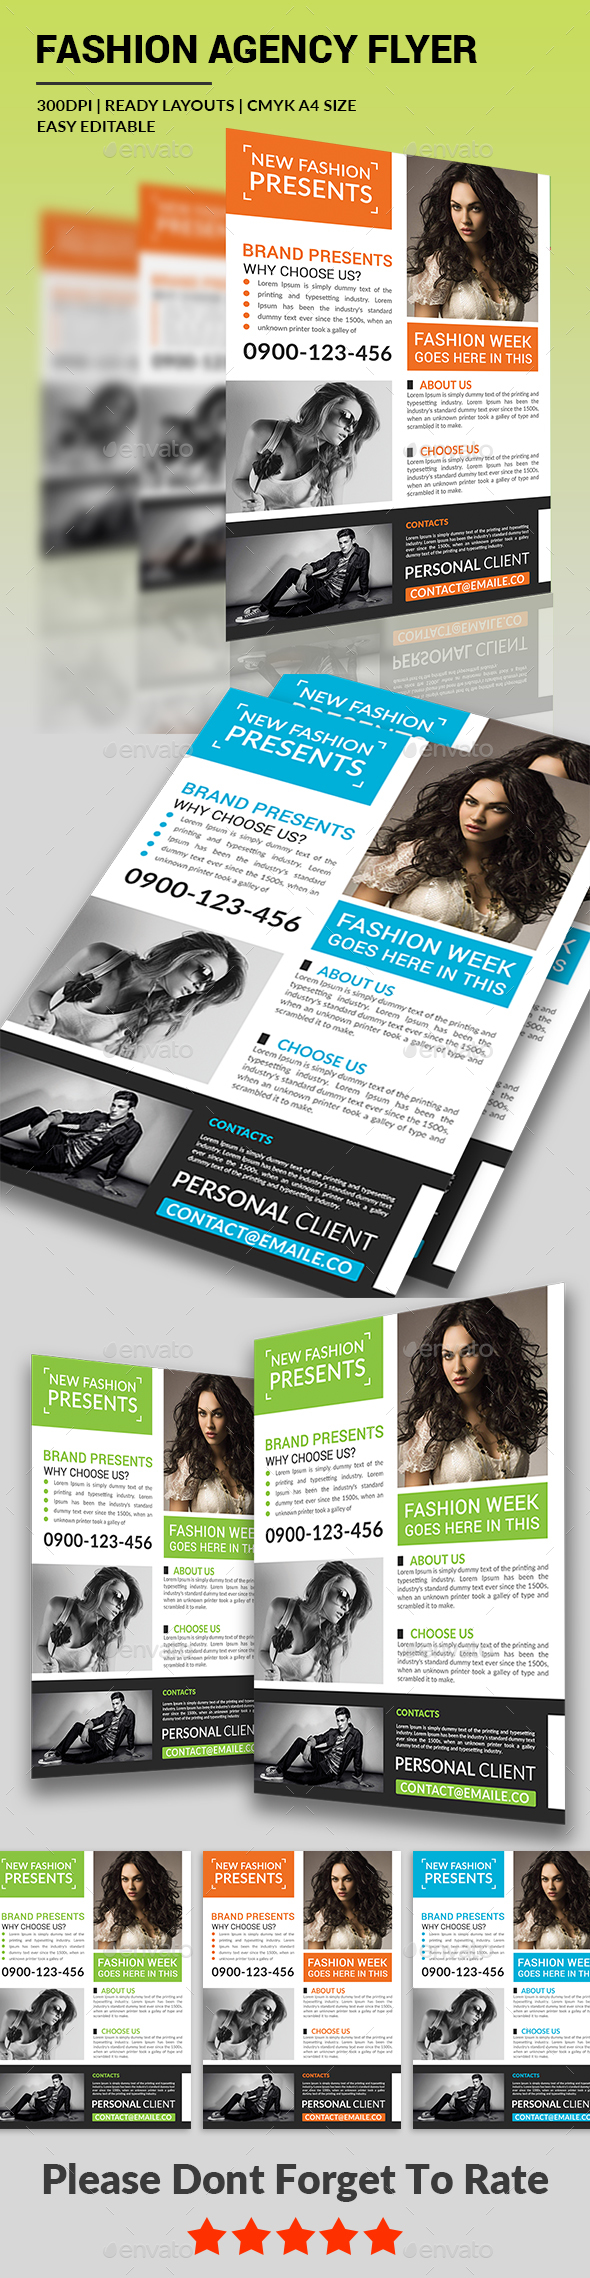 Fashion Agency Flyer - Corporate Flyers